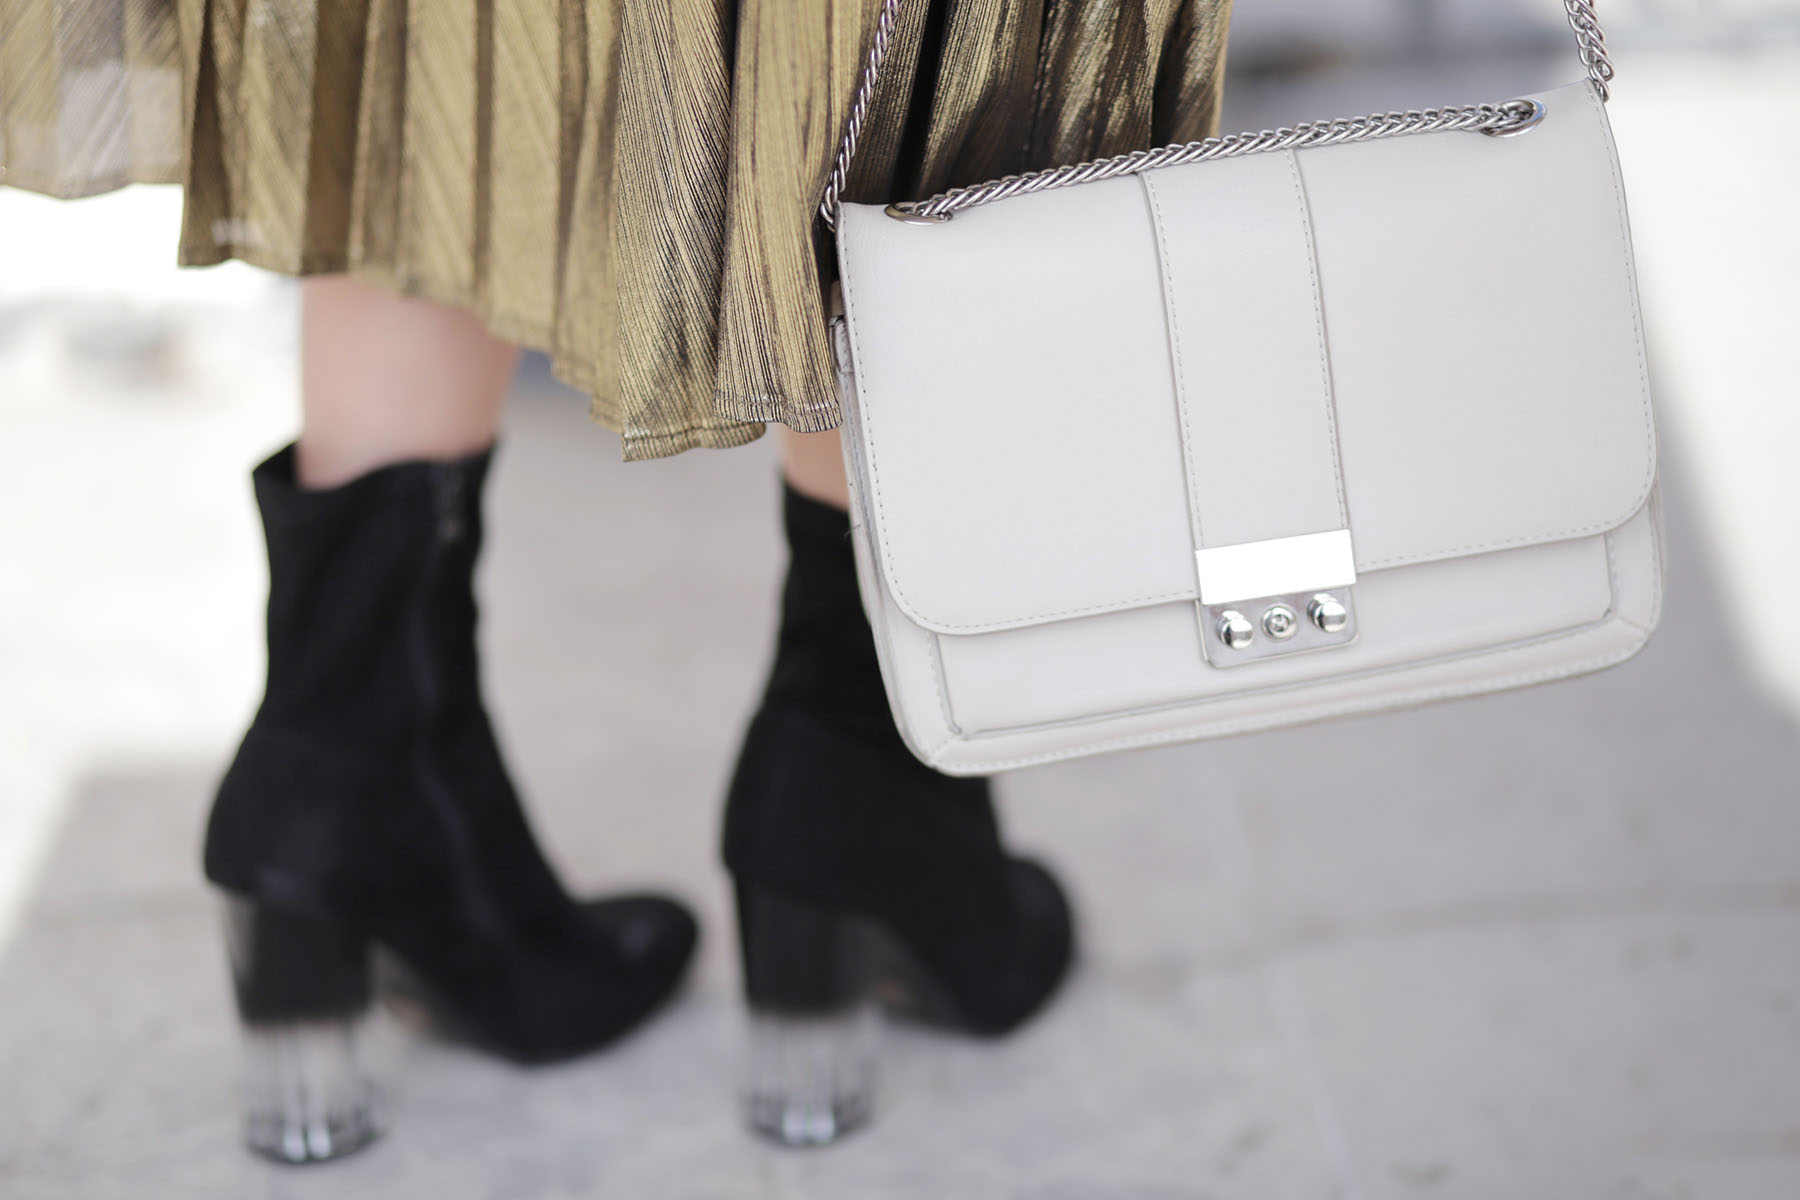 sac-a-main-blanc-casse-minimaliste-et-bottines-talon-transparent